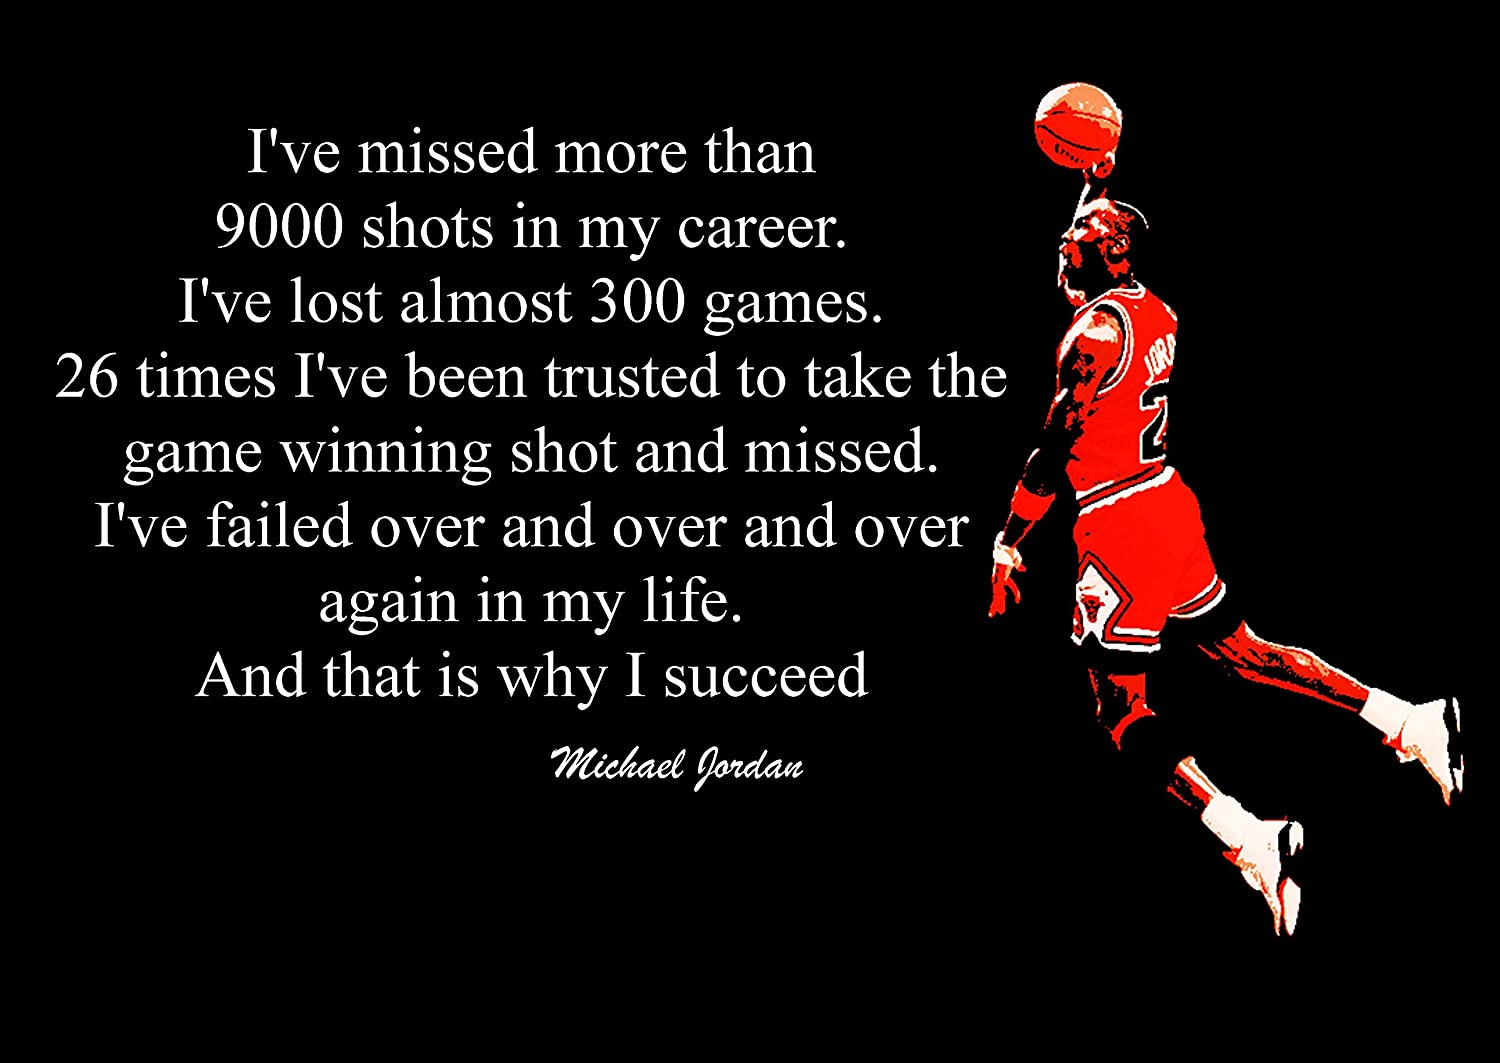 2 PICTURE INSPIRATIONAL MICHAEL JORDAN BASKETBALL QUOTE POSTER PRINT